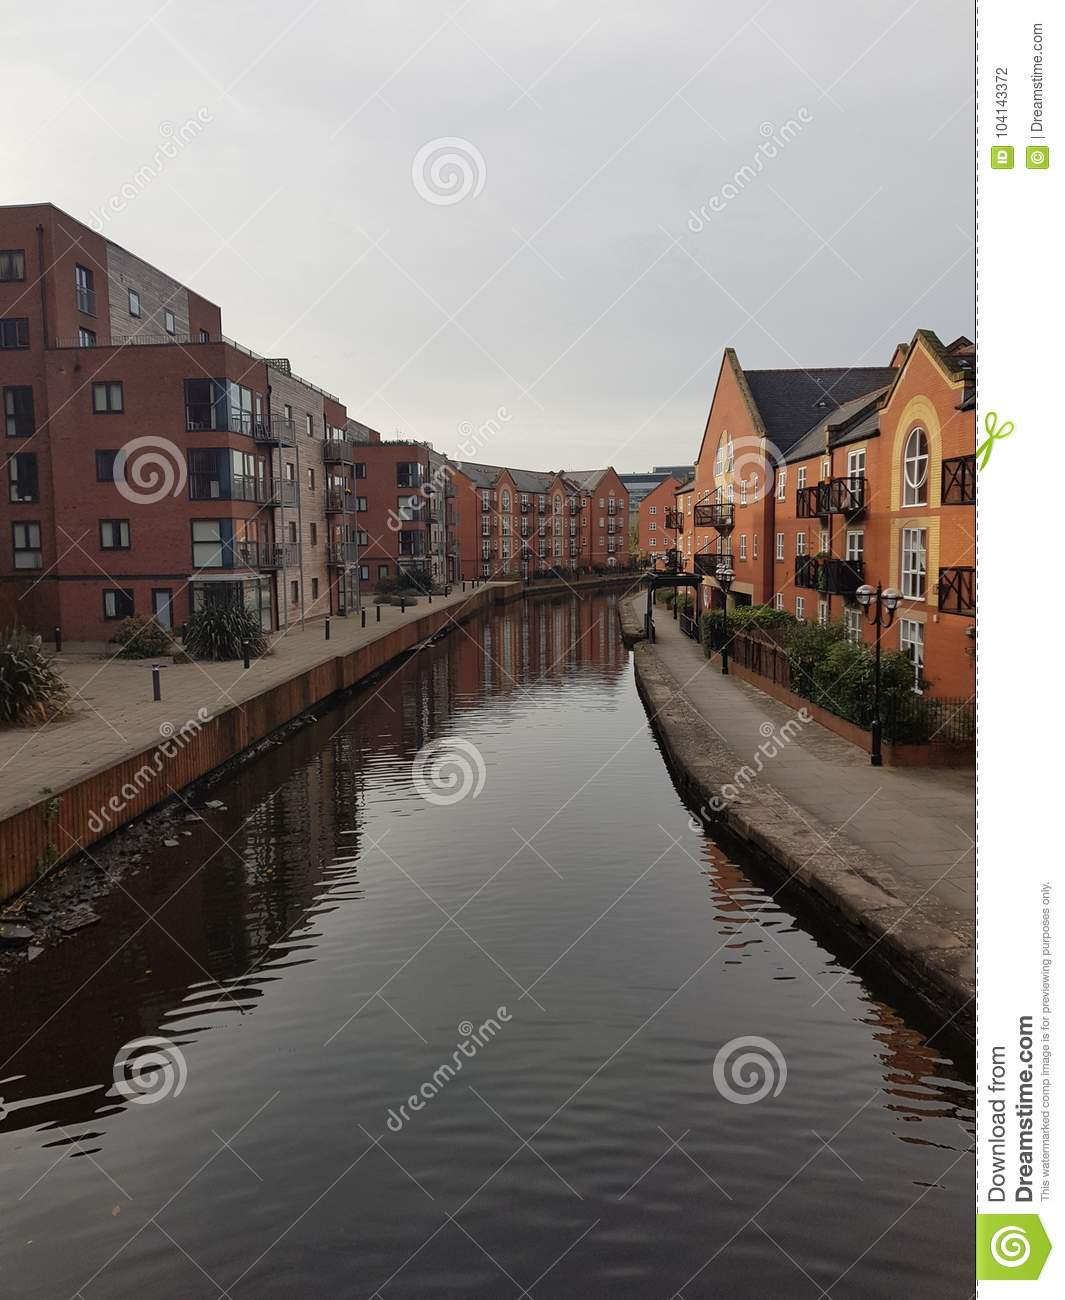 manchester stock photo image of manchaster tour manchastee